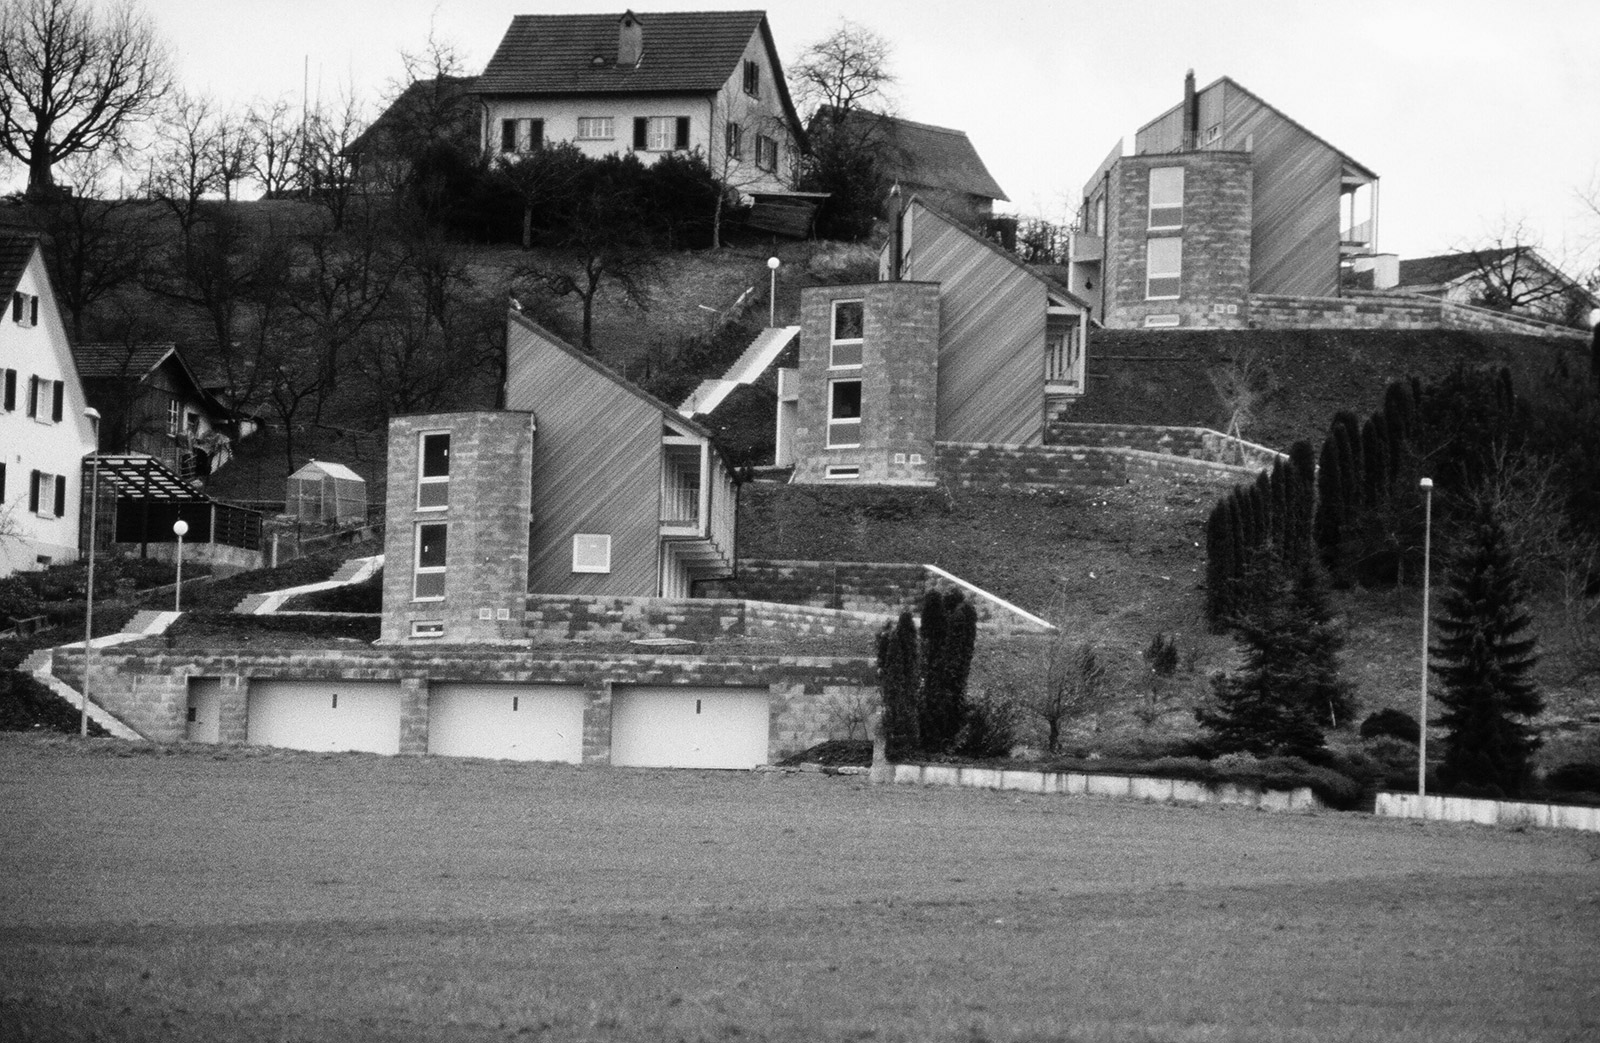 living with a castle view, Brunnmattstrassse, 1982